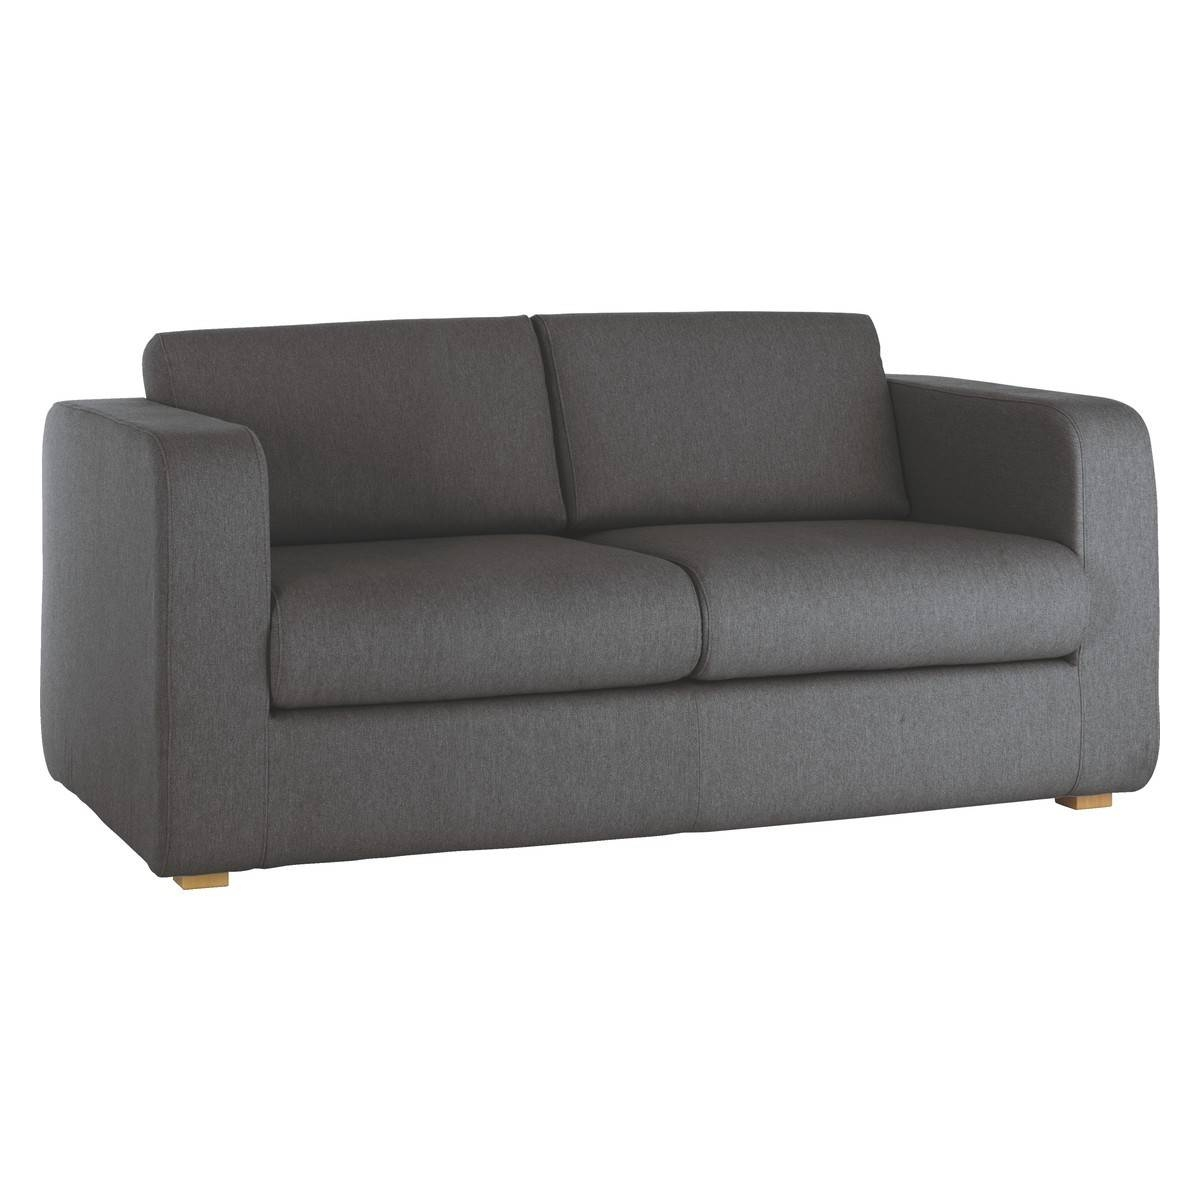 Porto Charcoal Fabric 2 Seater Sofa | Buy Now At Habitat Uk inside Two Seater Chairs (Image 17 of 30)